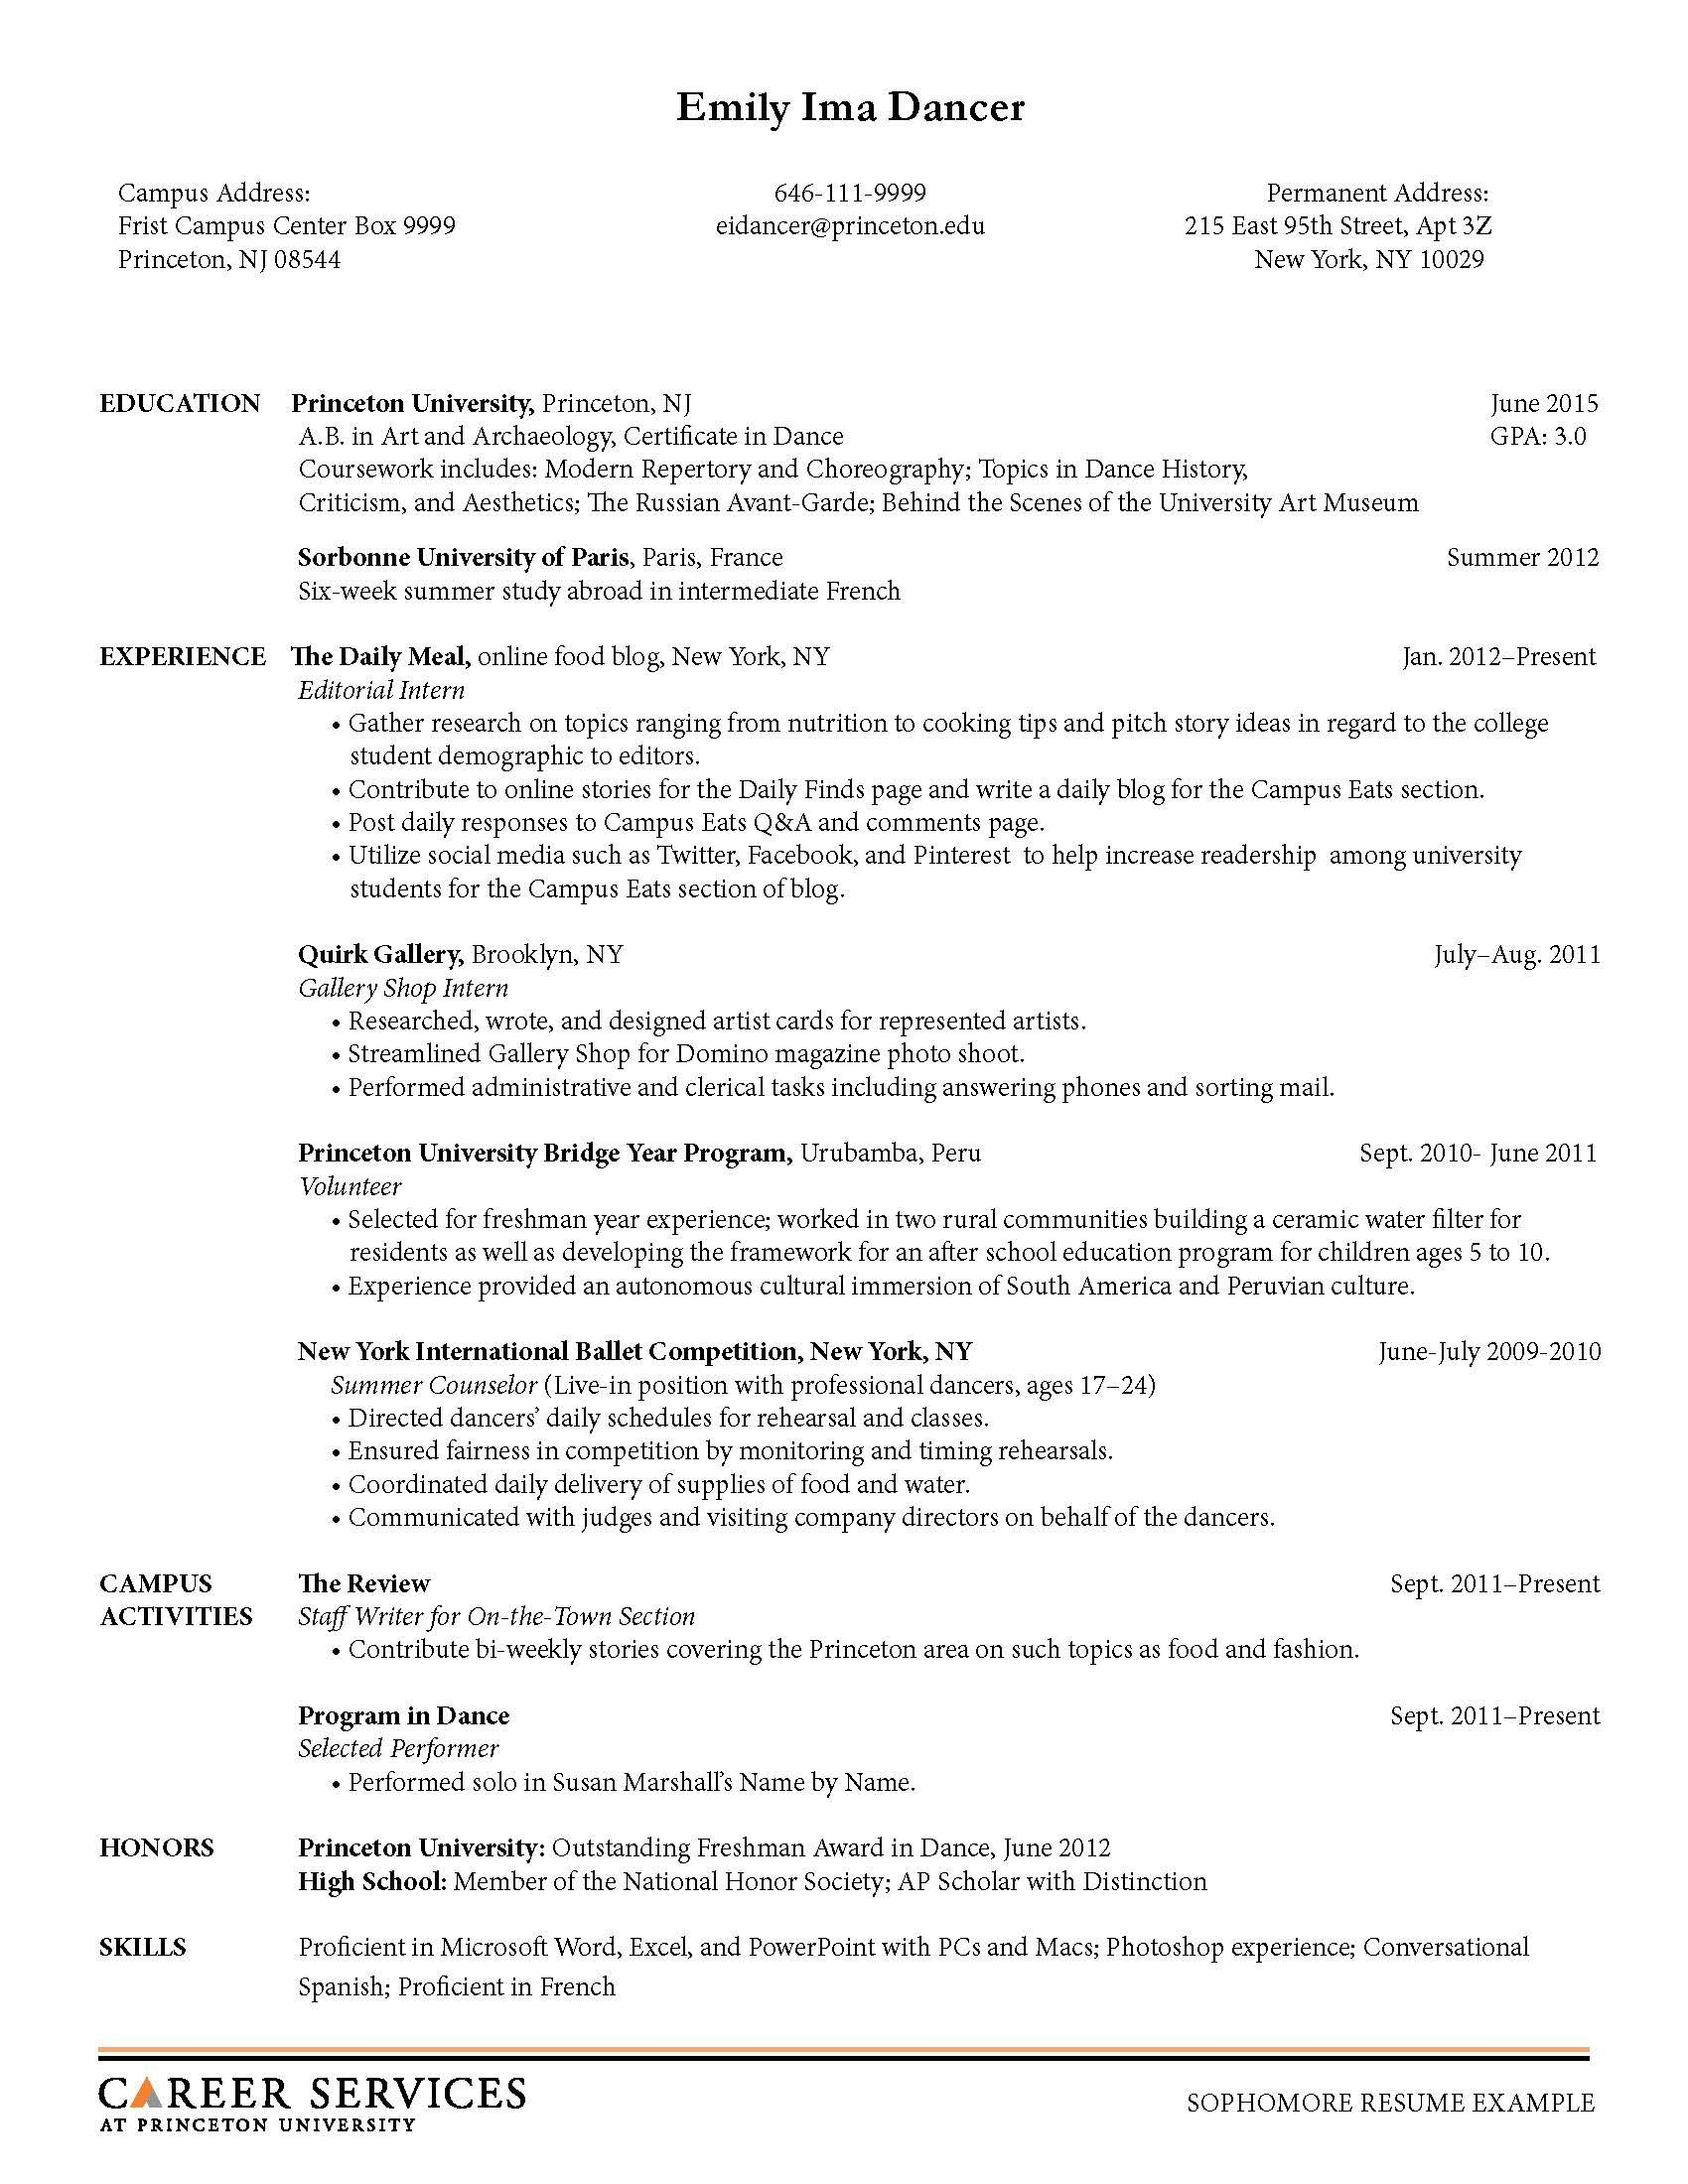 Opposenewapstandardsus  Sweet Sample Resume Resume And Career On Pinterest With Licious Best Sample Resume Besides School Secretary Resume Furthermore Example High School Resume With Breathtaking Entry Level Resume Sample Also Online Resume Examples In Addition Groupon Resume And Technology Skills Resume As Well As How To Write A Nursing Resume Additionally Resume Email Sample From Pinterestcom With Opposenewapstandardsus  Licious Sample Resume Resume And Career On Pinterest With Breathtaking Best Sample Resume Besides School Secretary Resume Furthermore Example High School Resume And Sweet Entry Level Resume Sample Also Online Resume Examples In Addition Groupon Resume From Pinterestcom